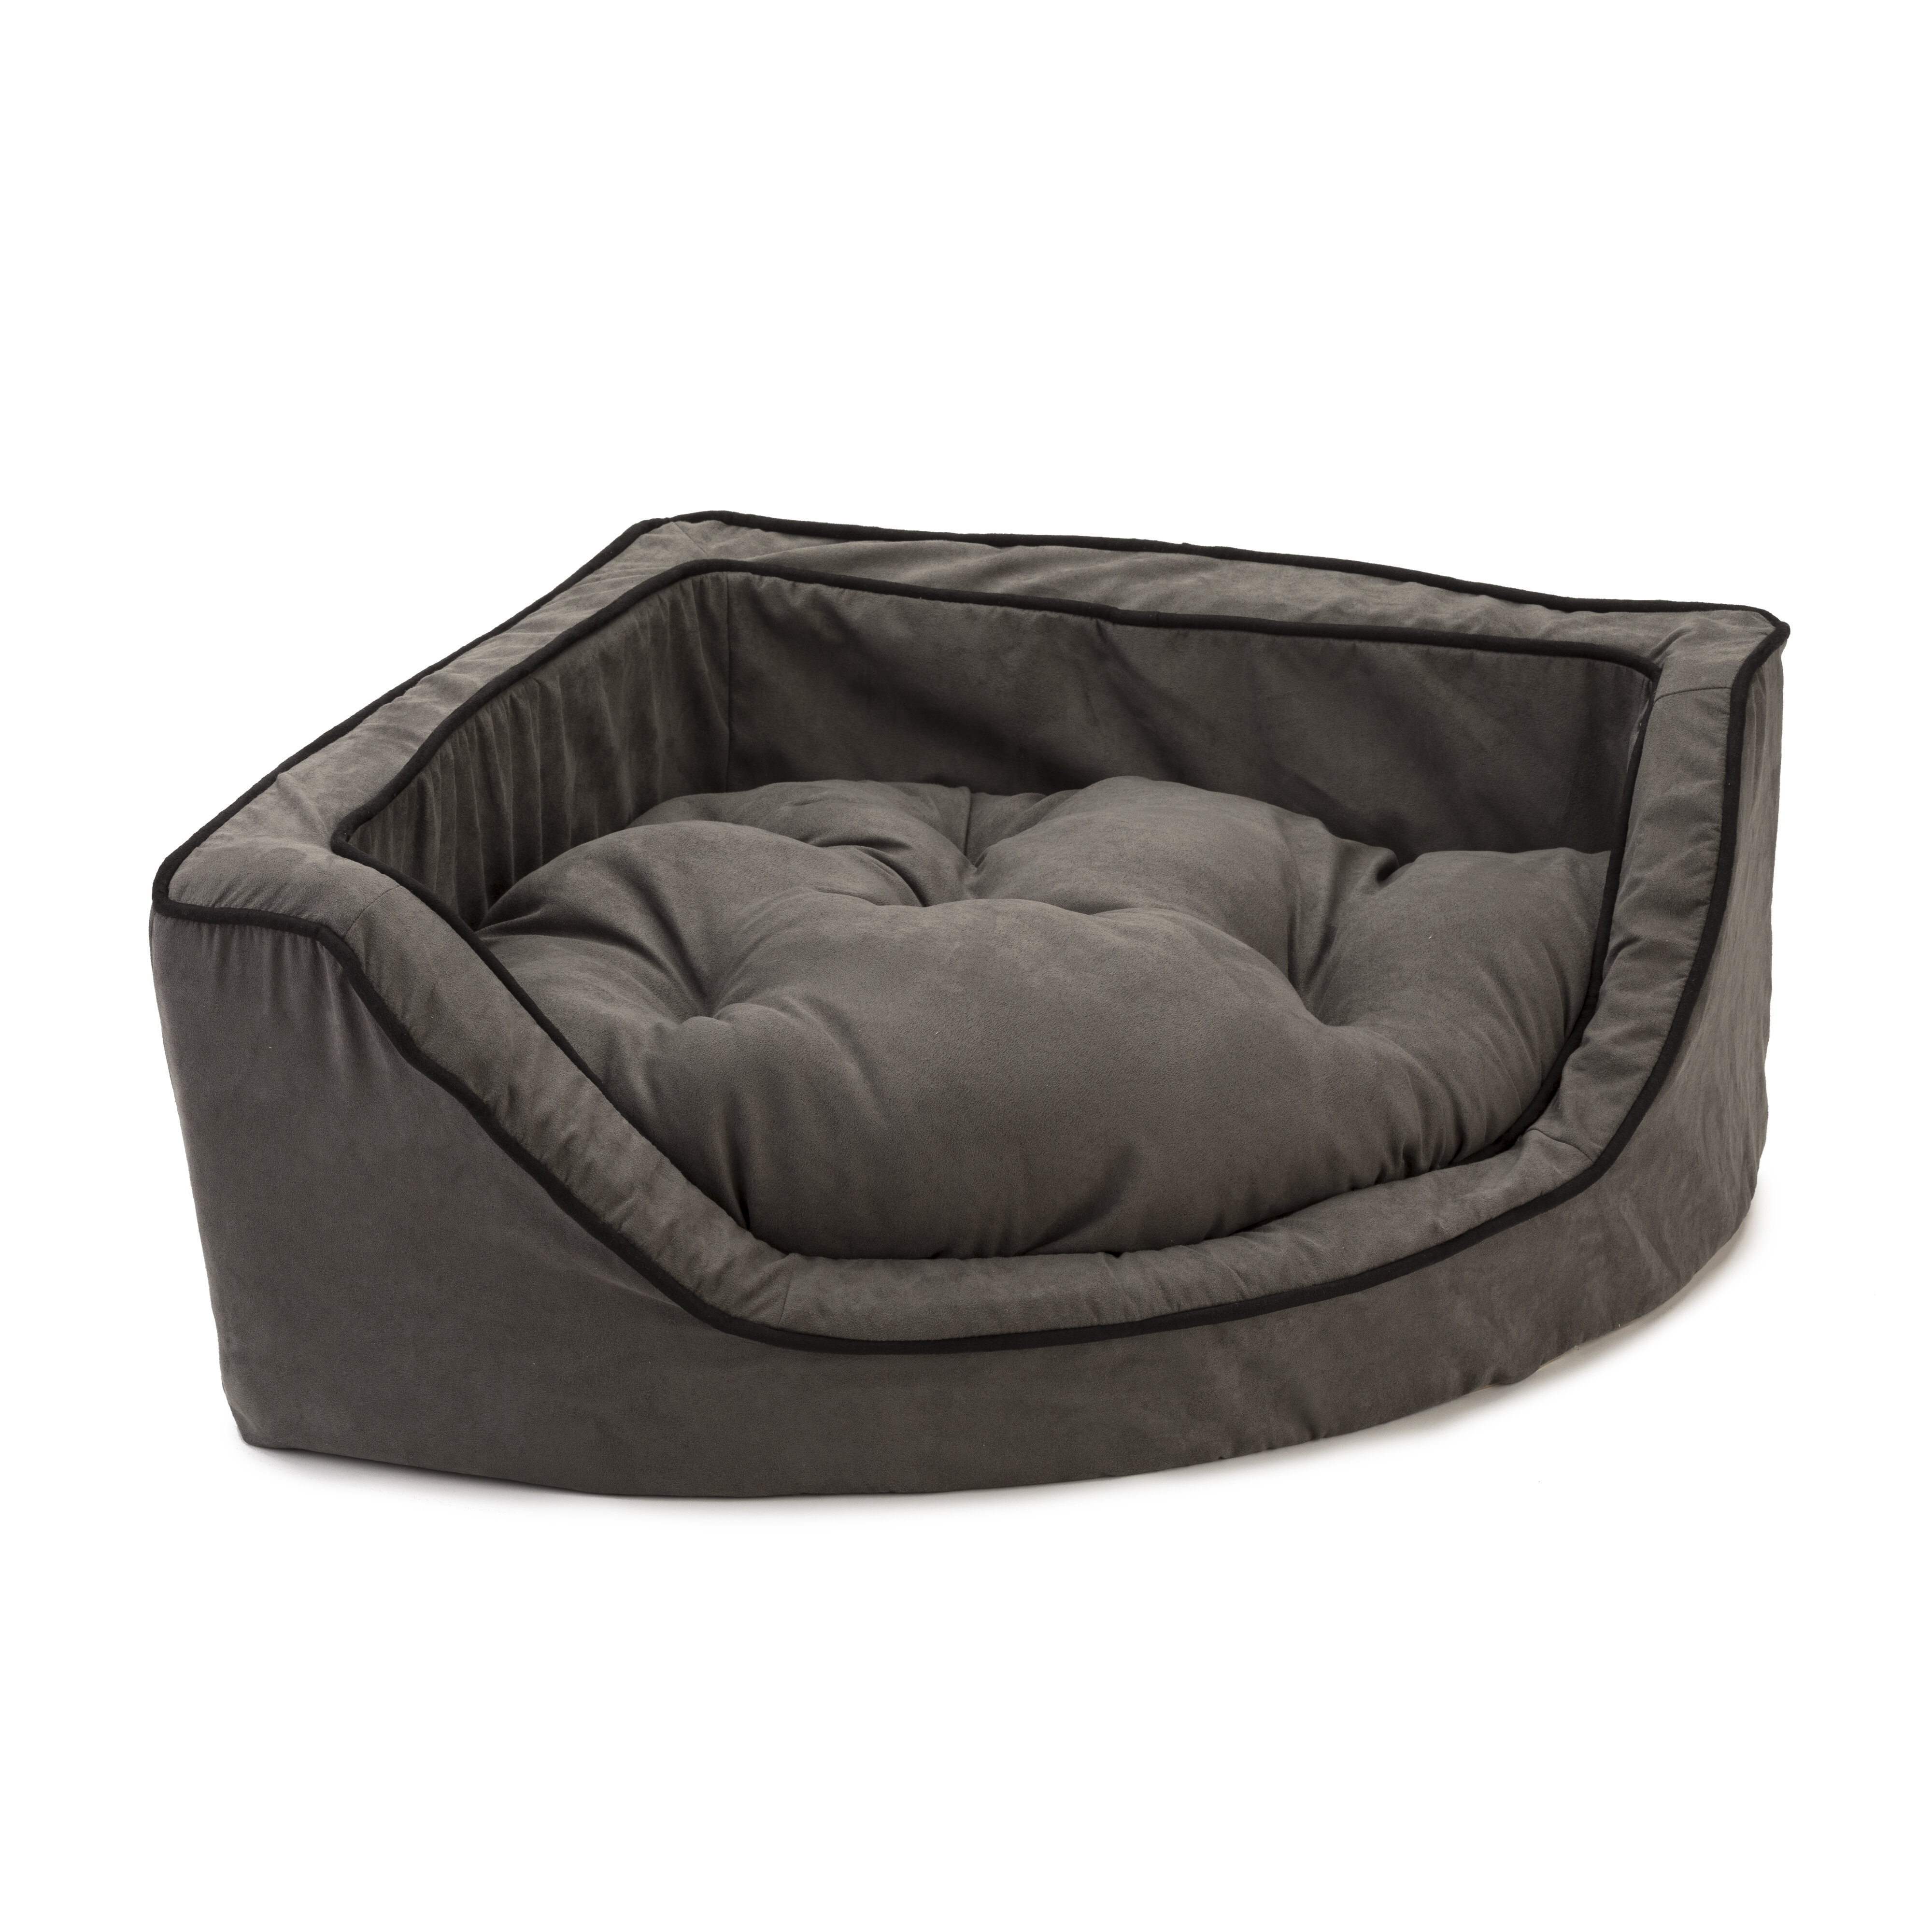 orthopedic katie blk ortho katiepuff products dog puff luxury black bed beds animals matter